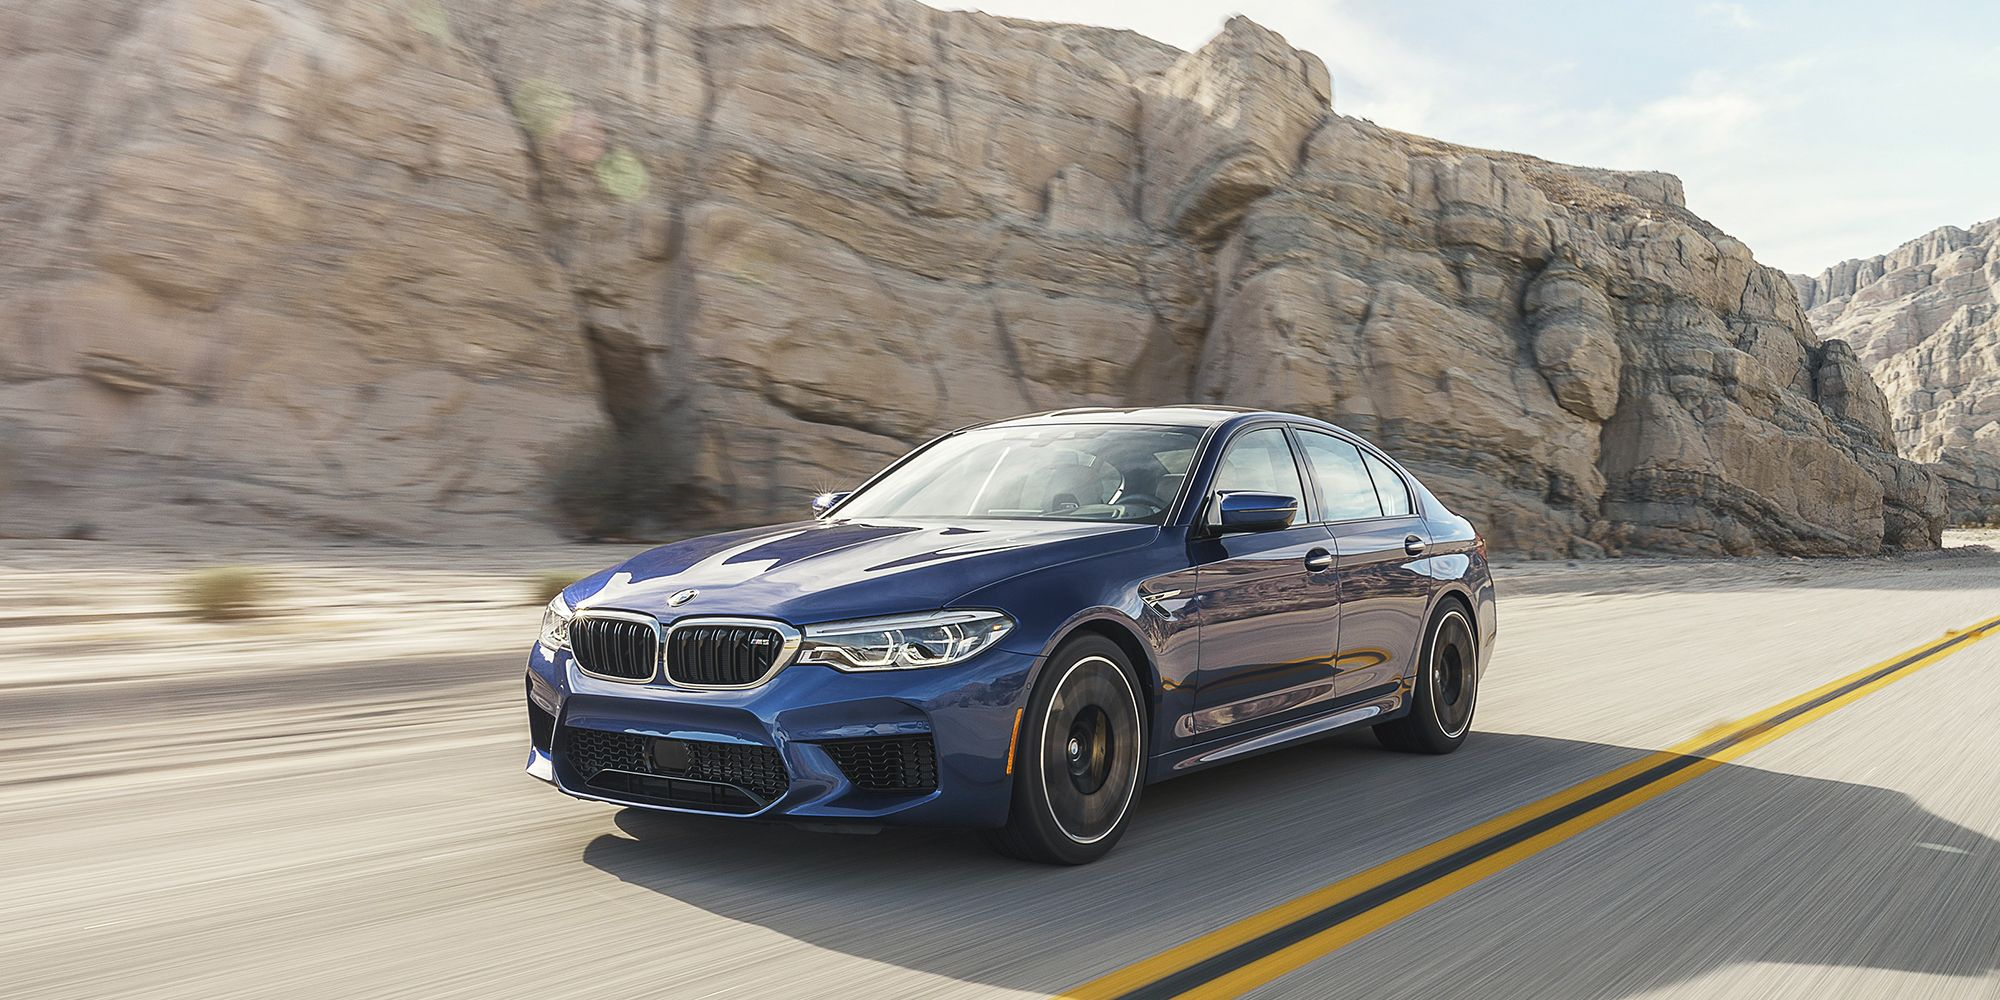 2018 BMW M5: First Drive - Review of the New AWD M5